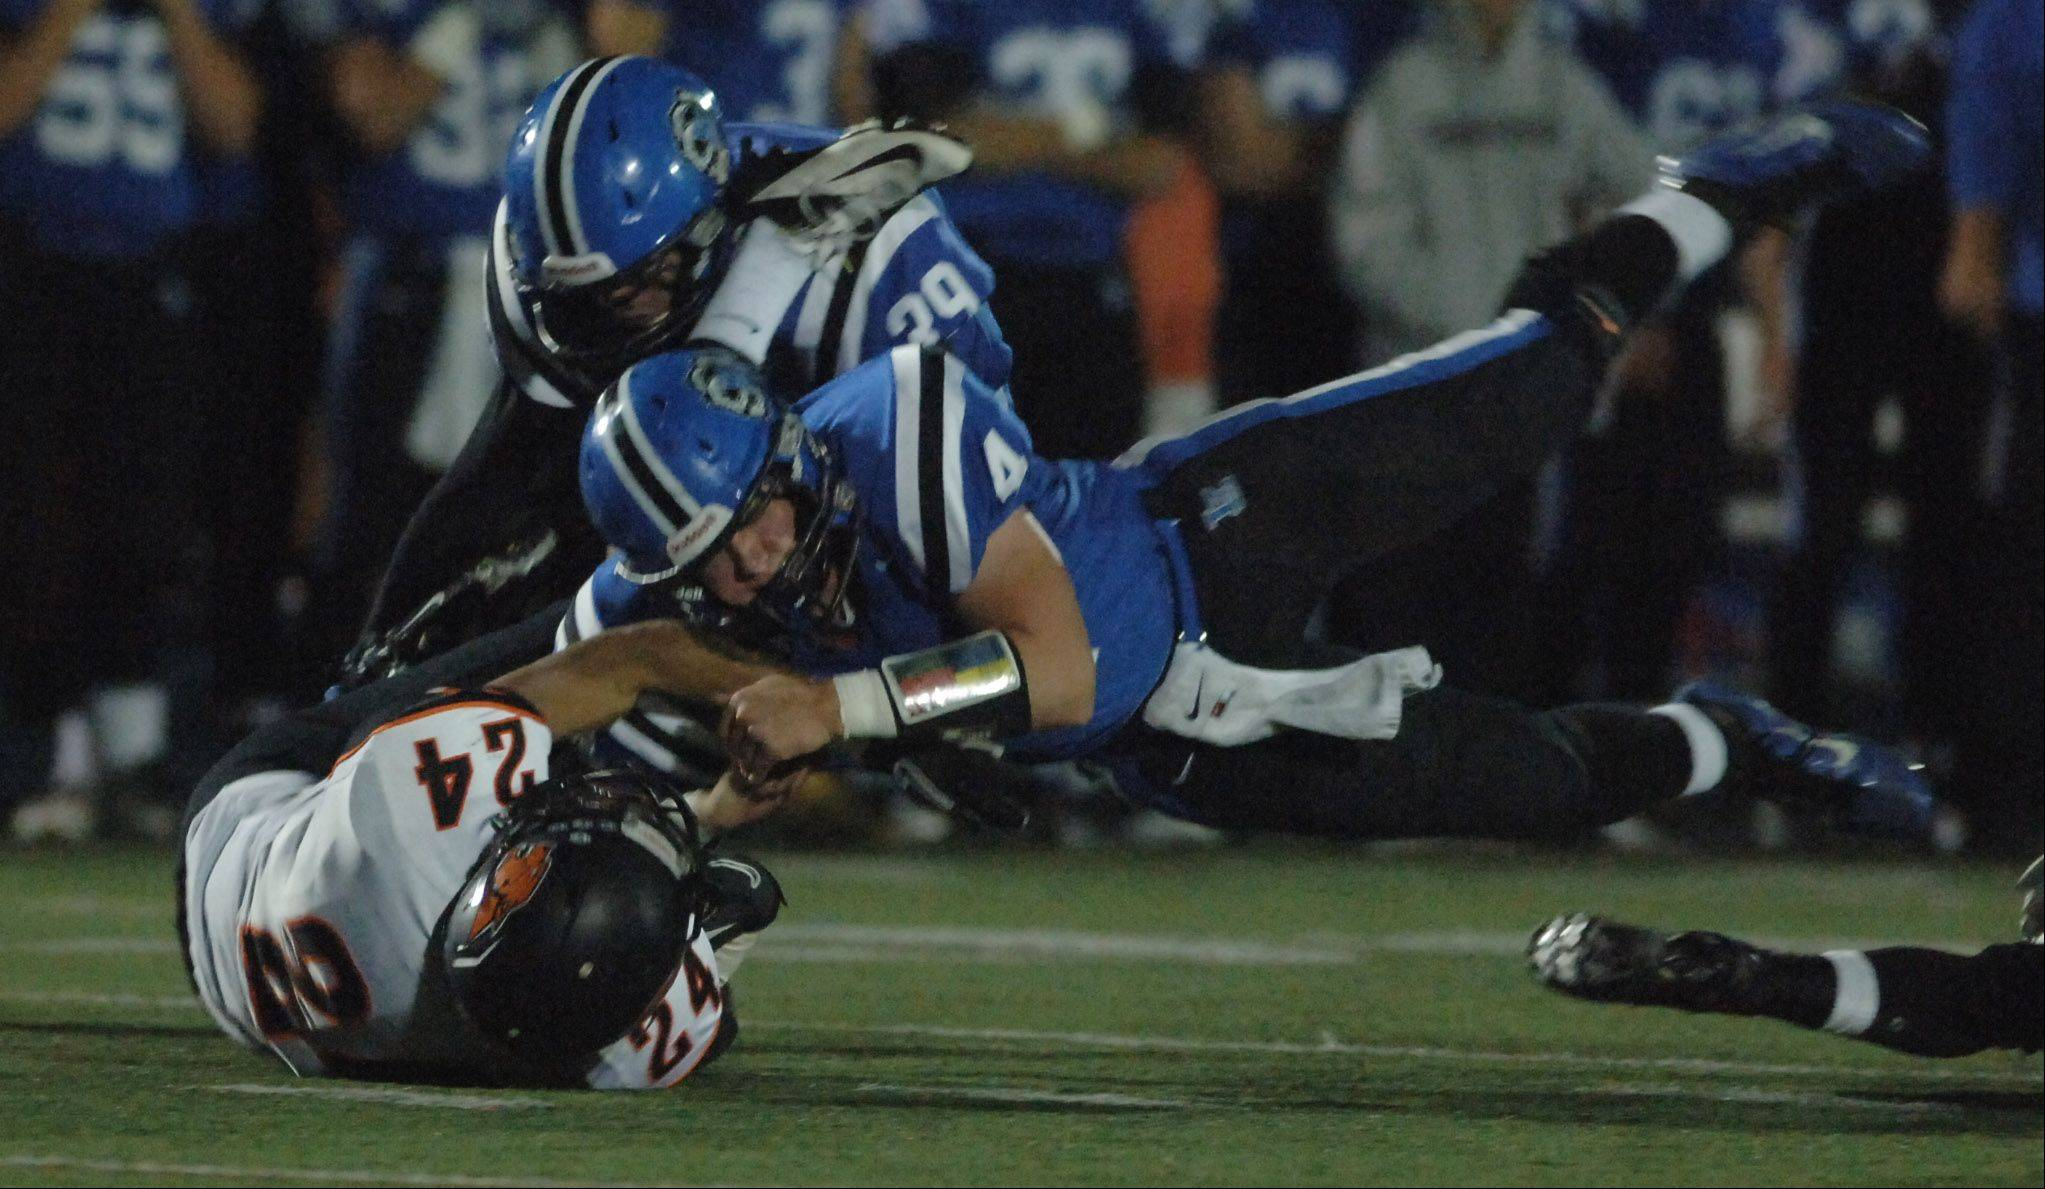 Lake Zurich's Noah Allgood, 4, lays into Libertyville's Austin Williams during Friday's football game in Lake Zurich.